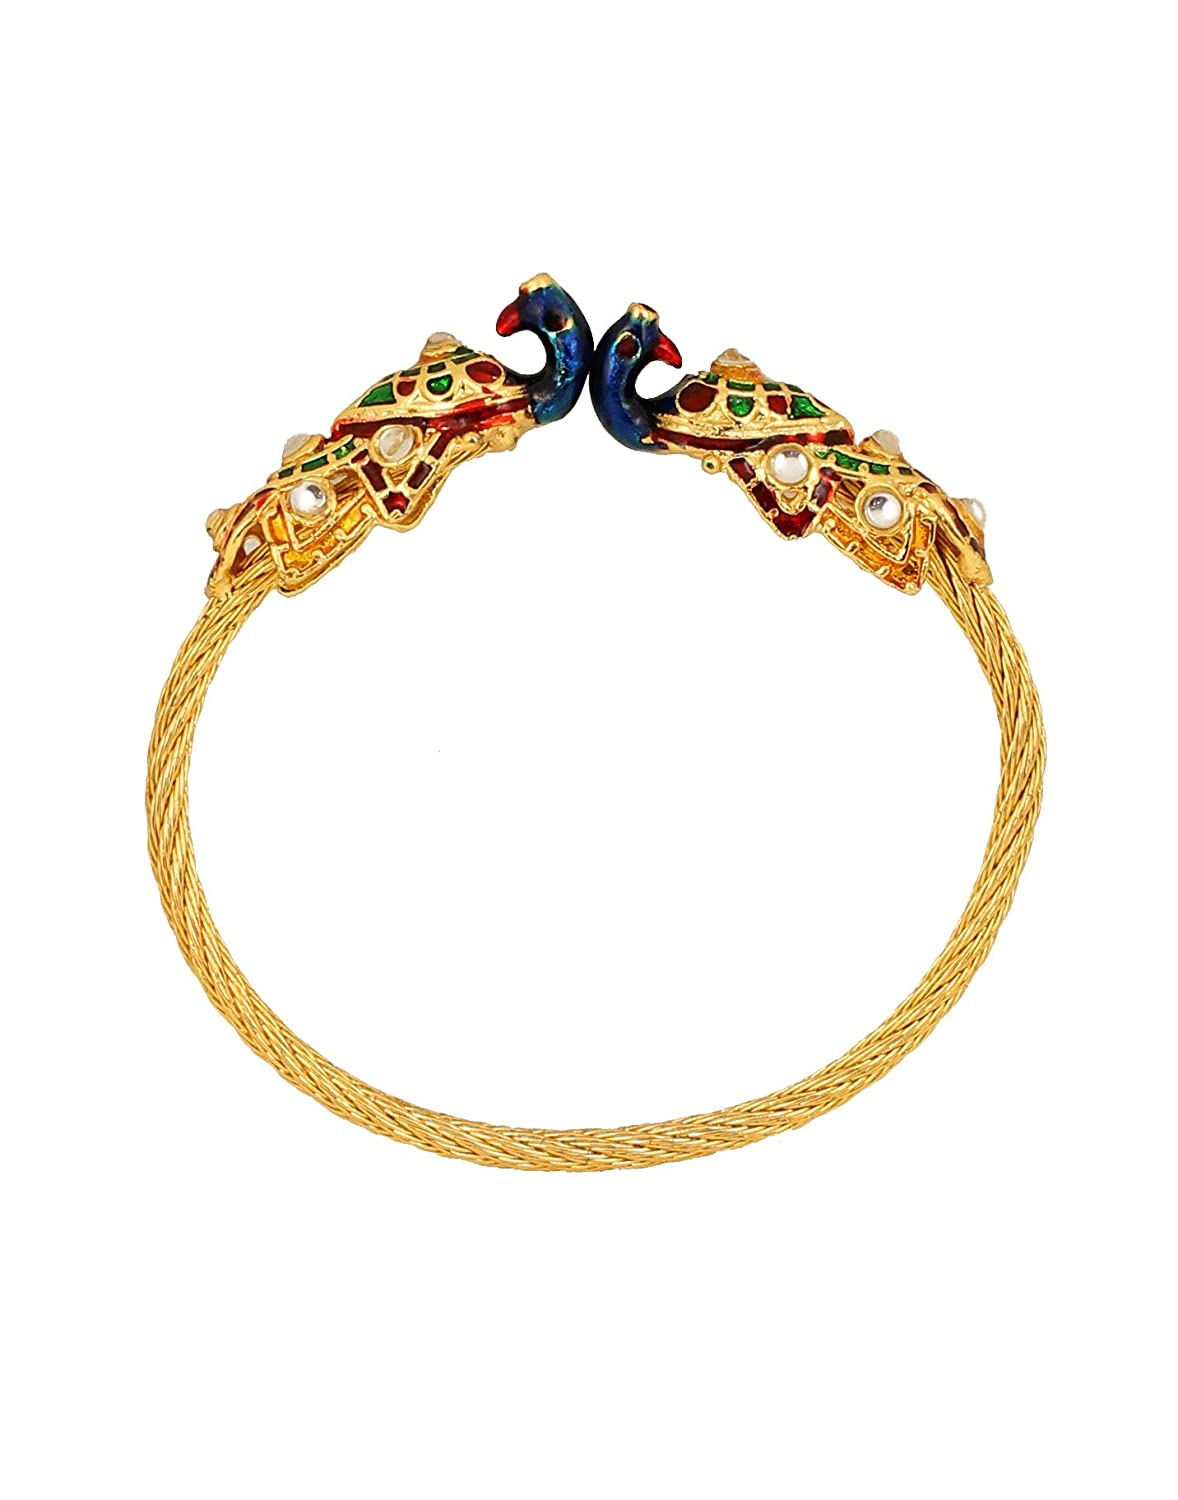 Touchstone New Indian Bollywood Brass Base Enchanting Look Finely Hand Crafted Work Enamel Meena Openable Free Size Bracelet in Gold Tone for Women.